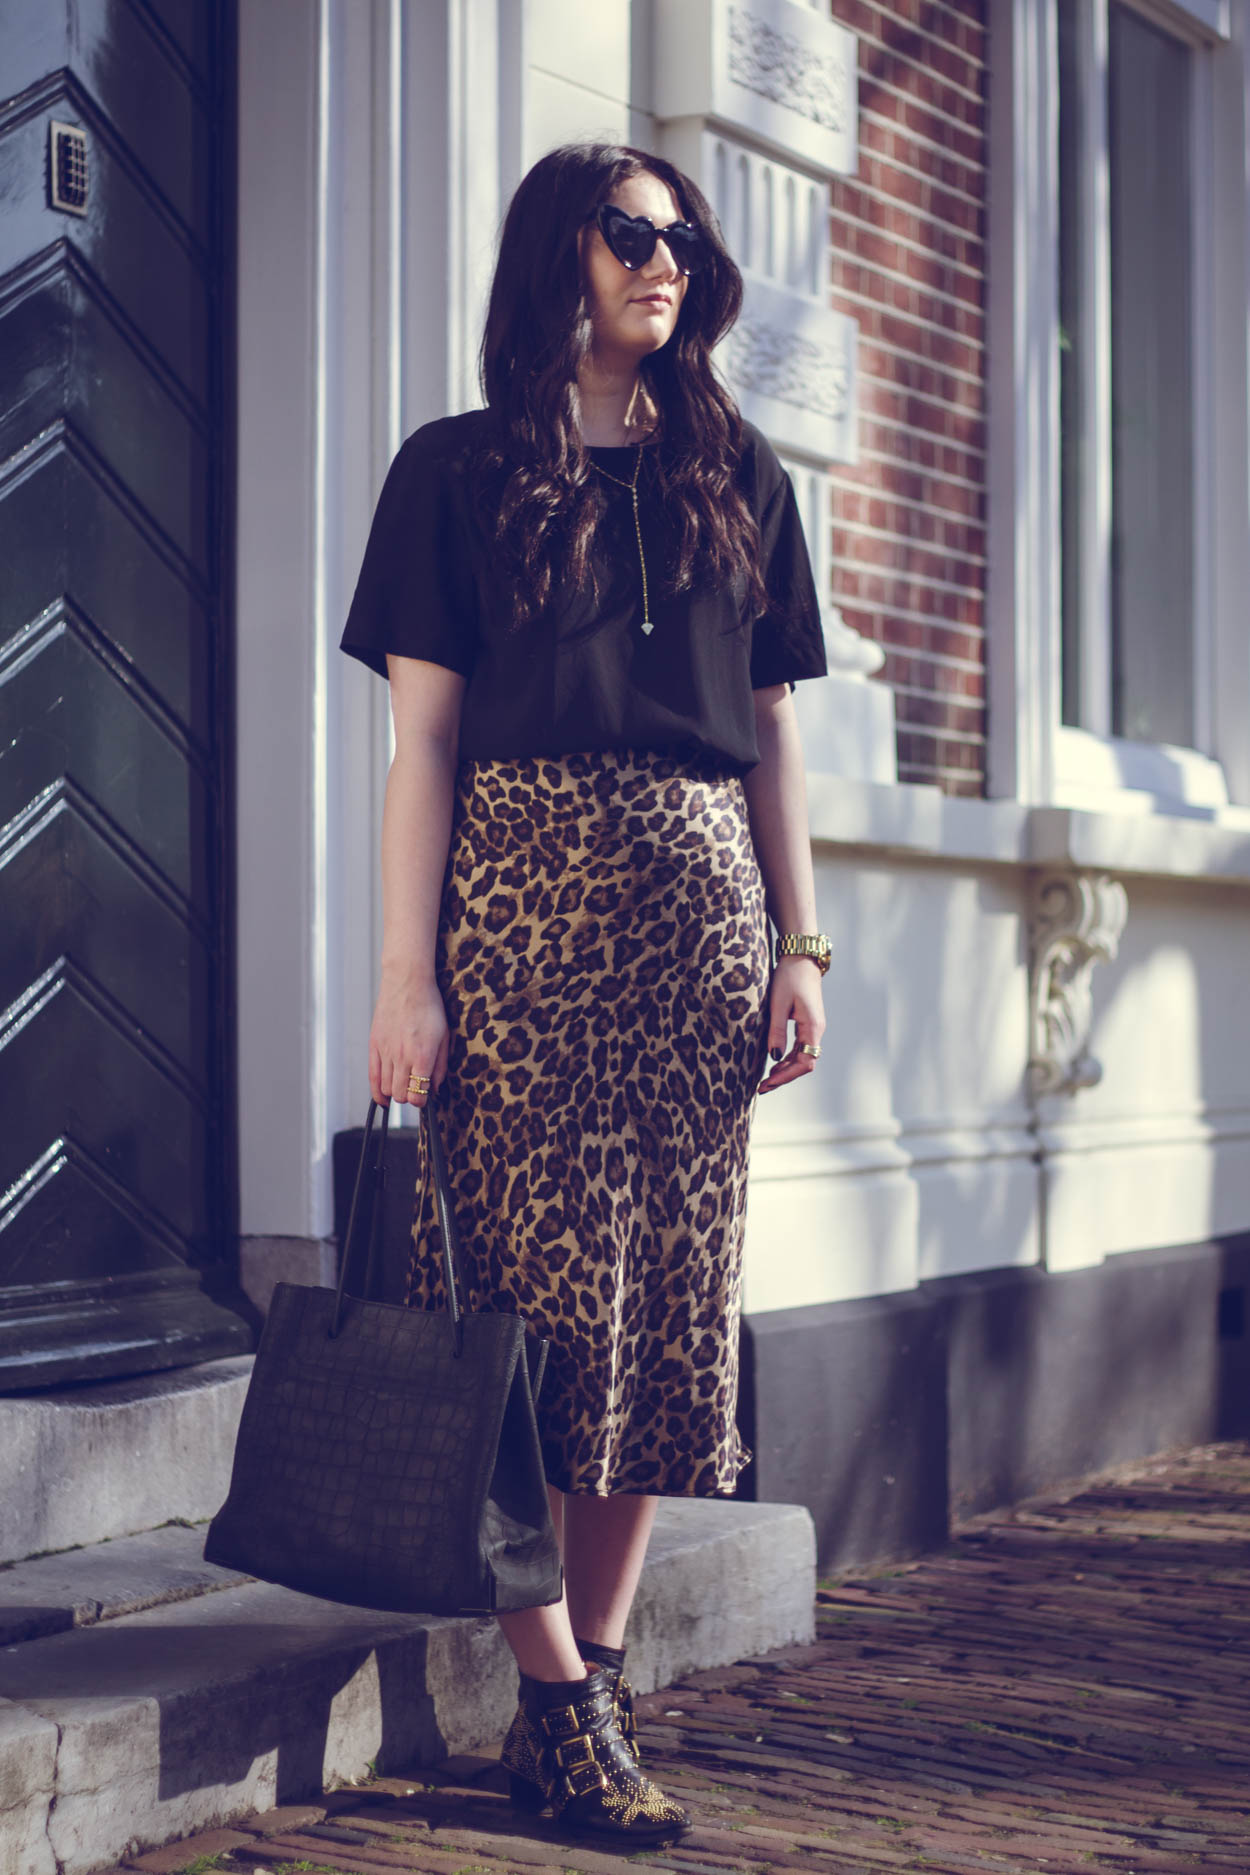 SPRING WORK WARDROBE: 5 CHIC ITEMS TO WEAR TO THE OFFICE   THECHICITALIAN   The items to create new spring work outfits with